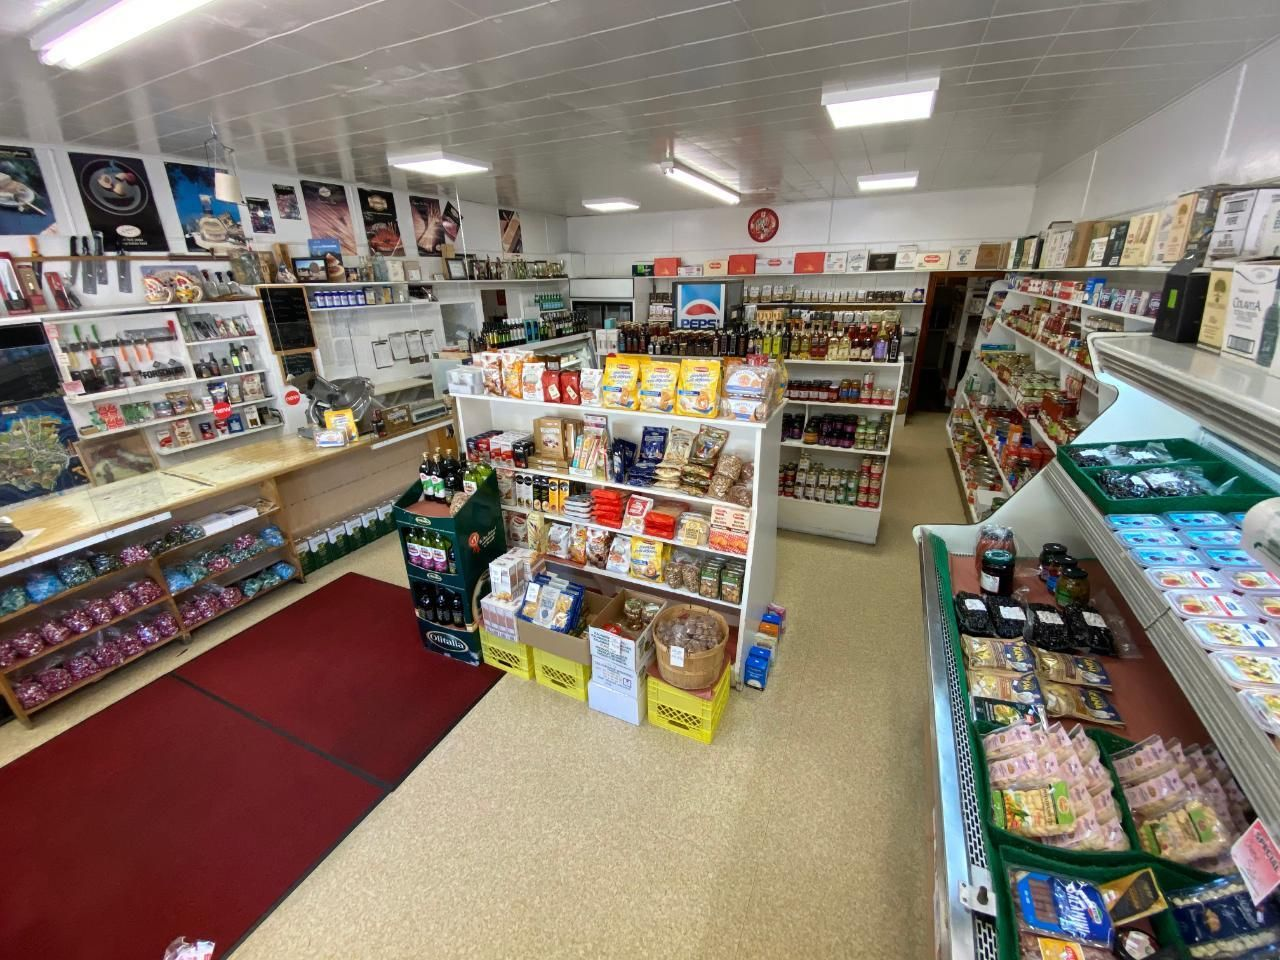 Photo 7: Photos: 328 ROSSLAND AVENUE in Trail: Retail for sale : MLS®# 2459289